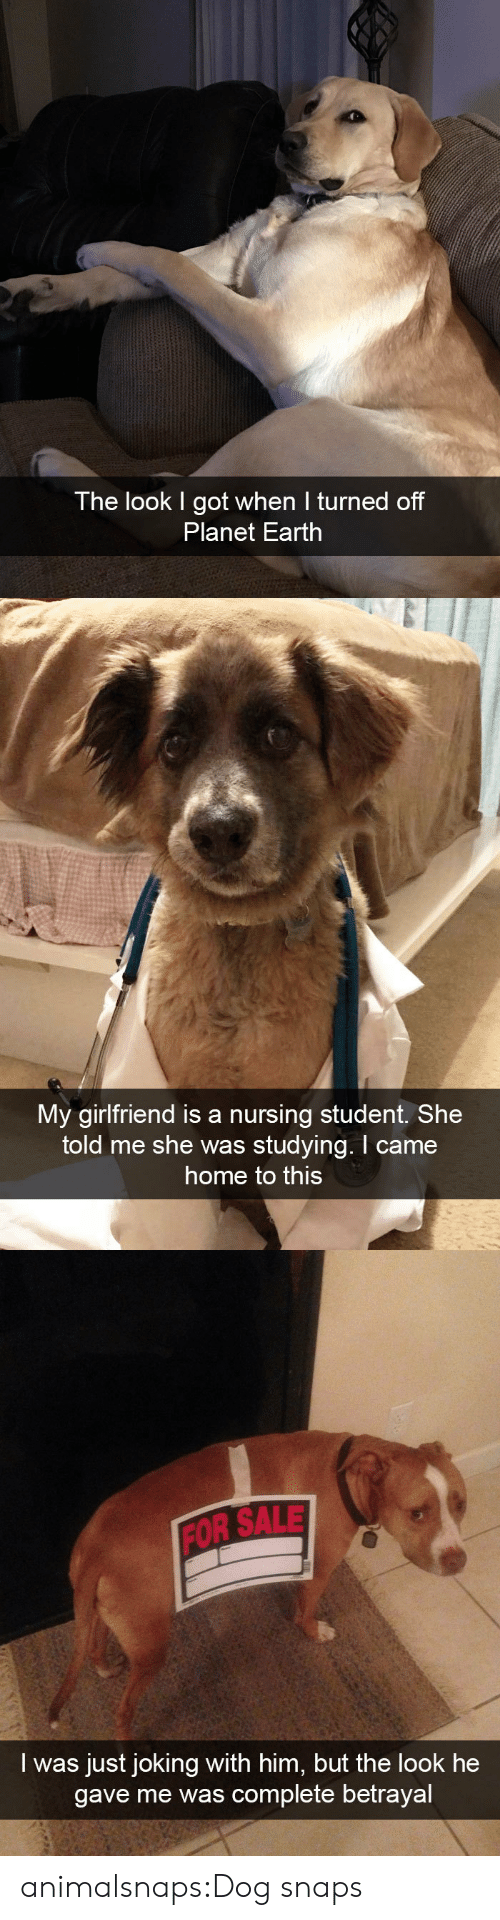 Him But: The look I got when I turned off  Planet Earth   My girlfriend is a nursing student. She  told me she was studying. I came  home to this   FOR SALE  I was just joking with him, but the look he  gave me was complete betrayal animalsnaps:Dog snaps